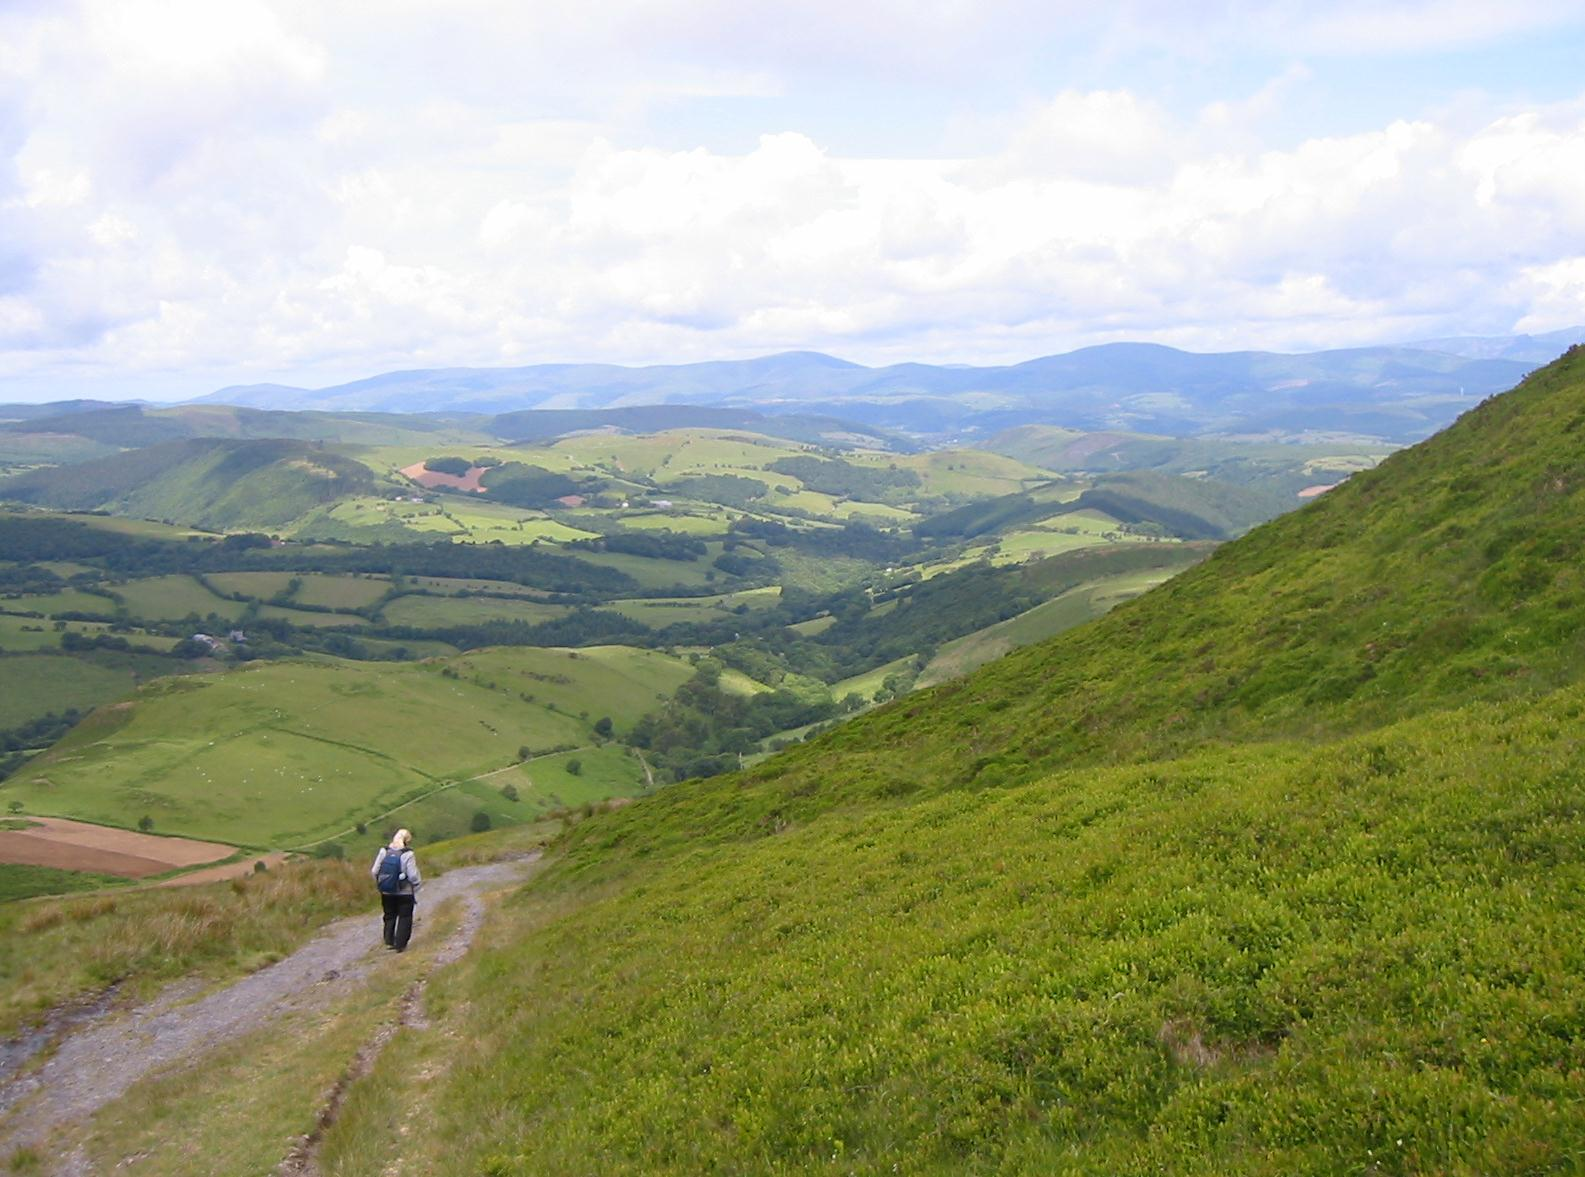 Margie on the descent from Foel Fadian